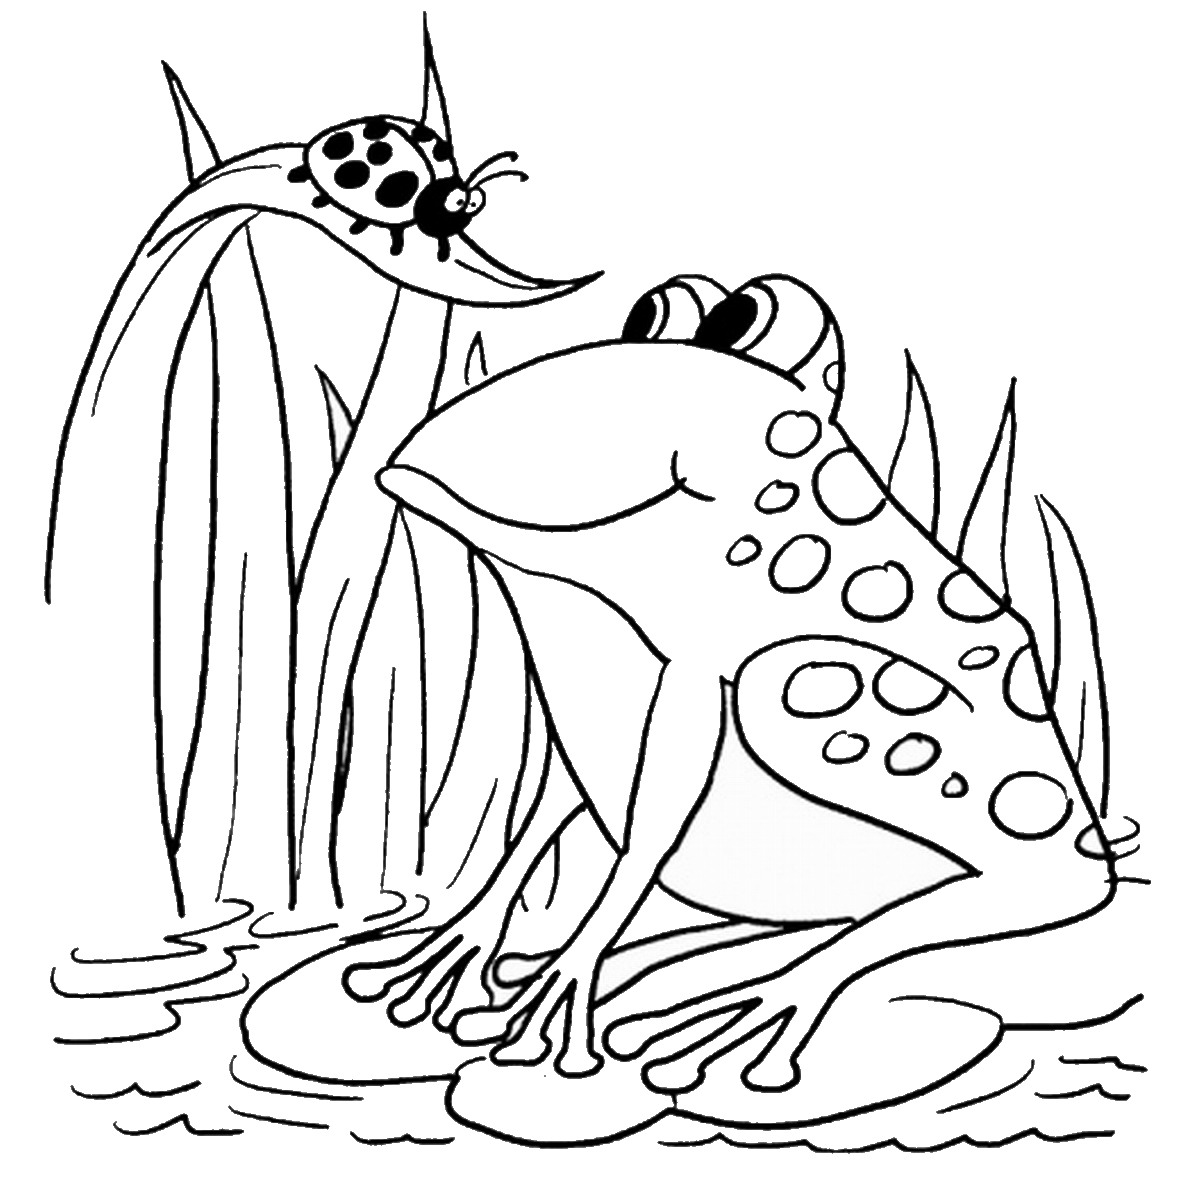 coloring images of frog frog coloring pages of images frog coloring 1 1